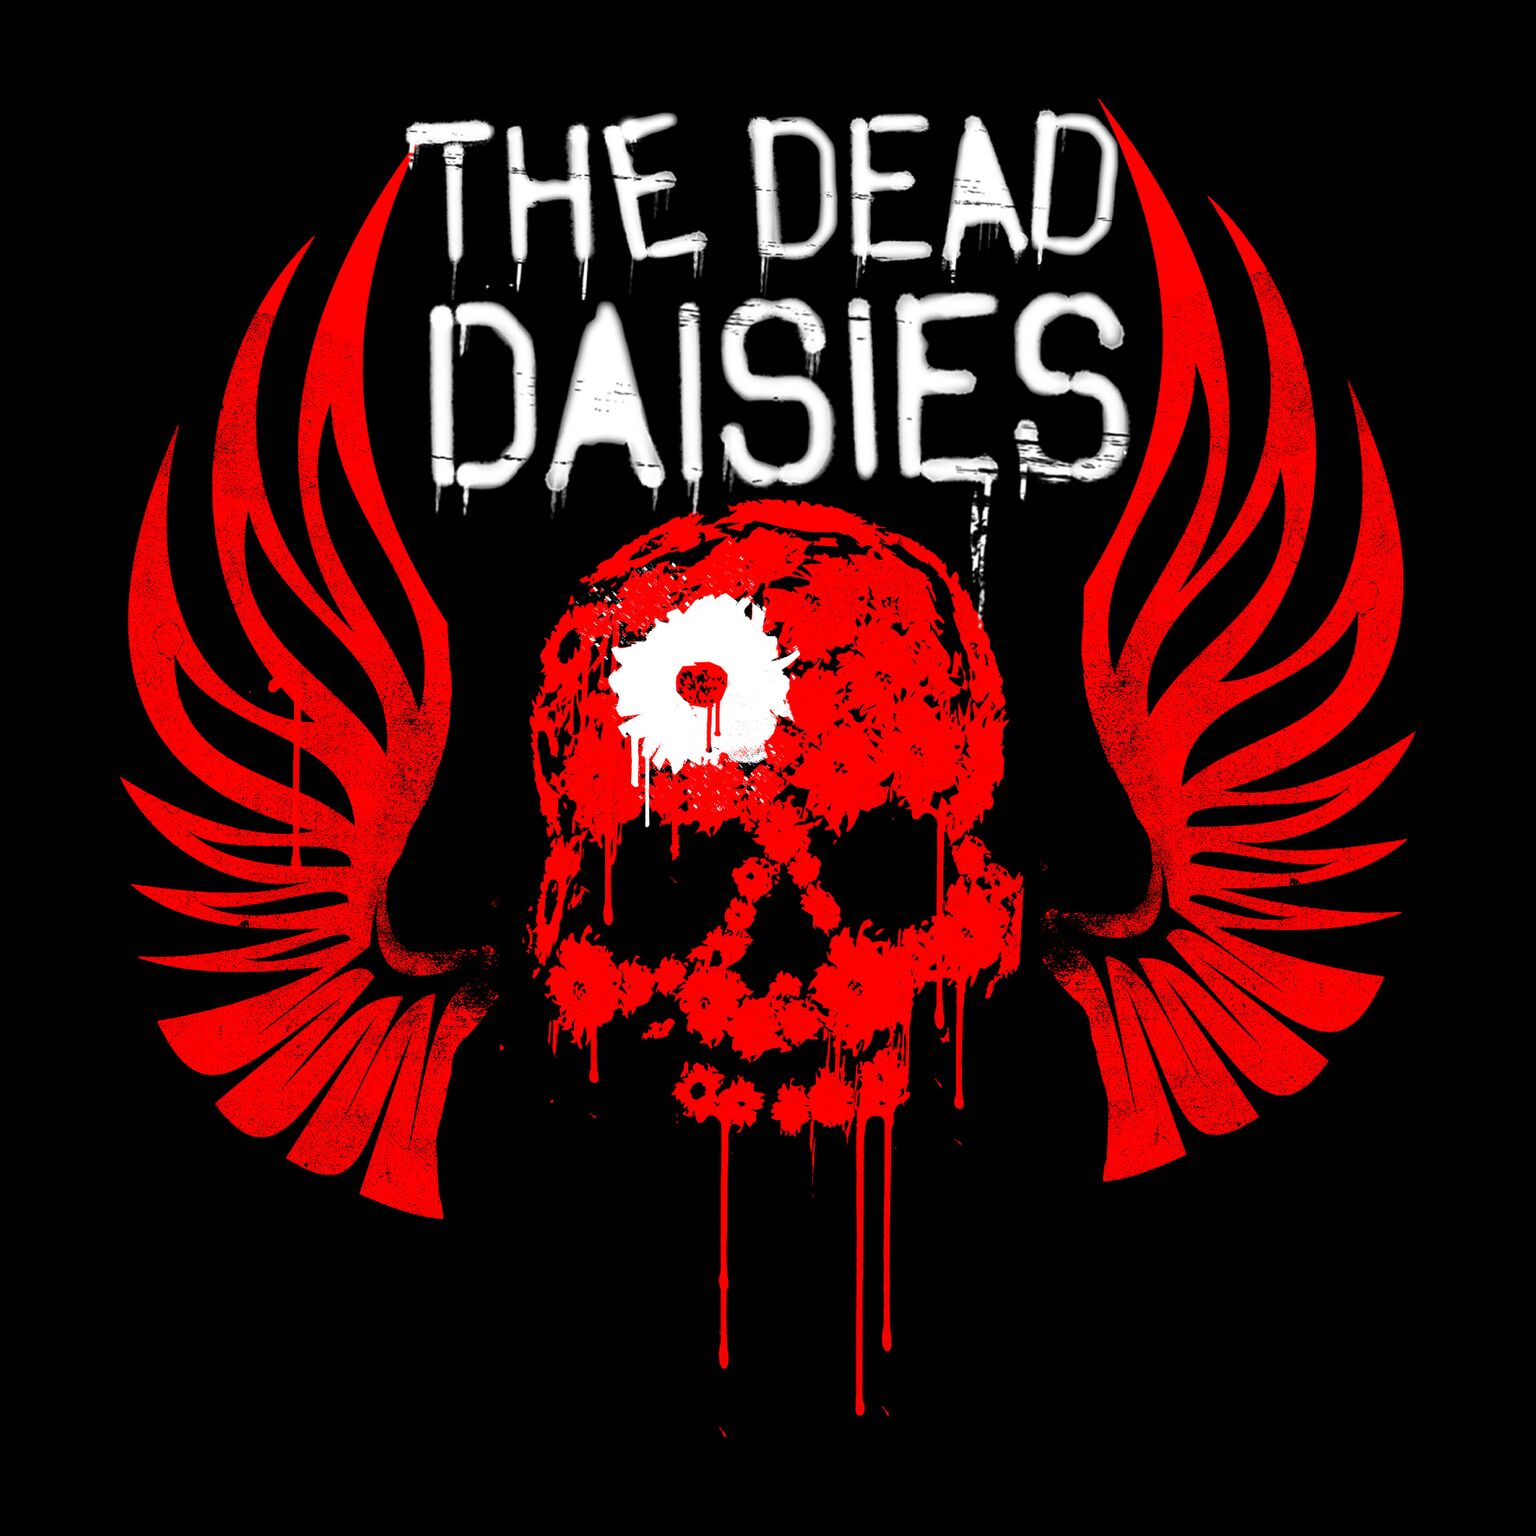 The Dead Daisies announce the first part of their world tour for 2018